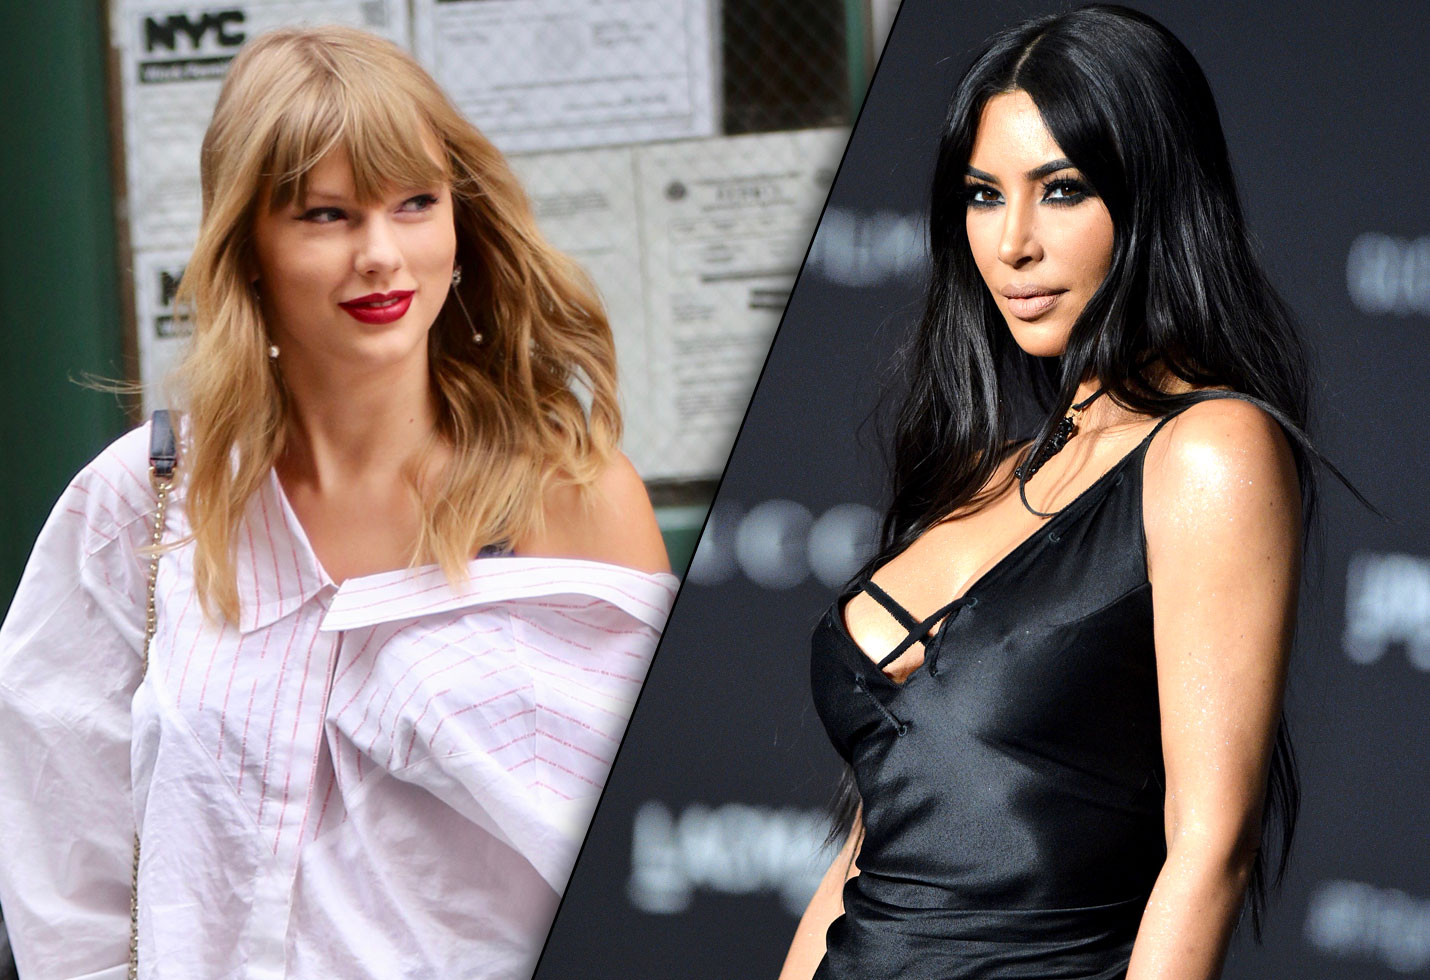 Taylor Swift in red lipstick smiling and Kim Kardashian in a black dress